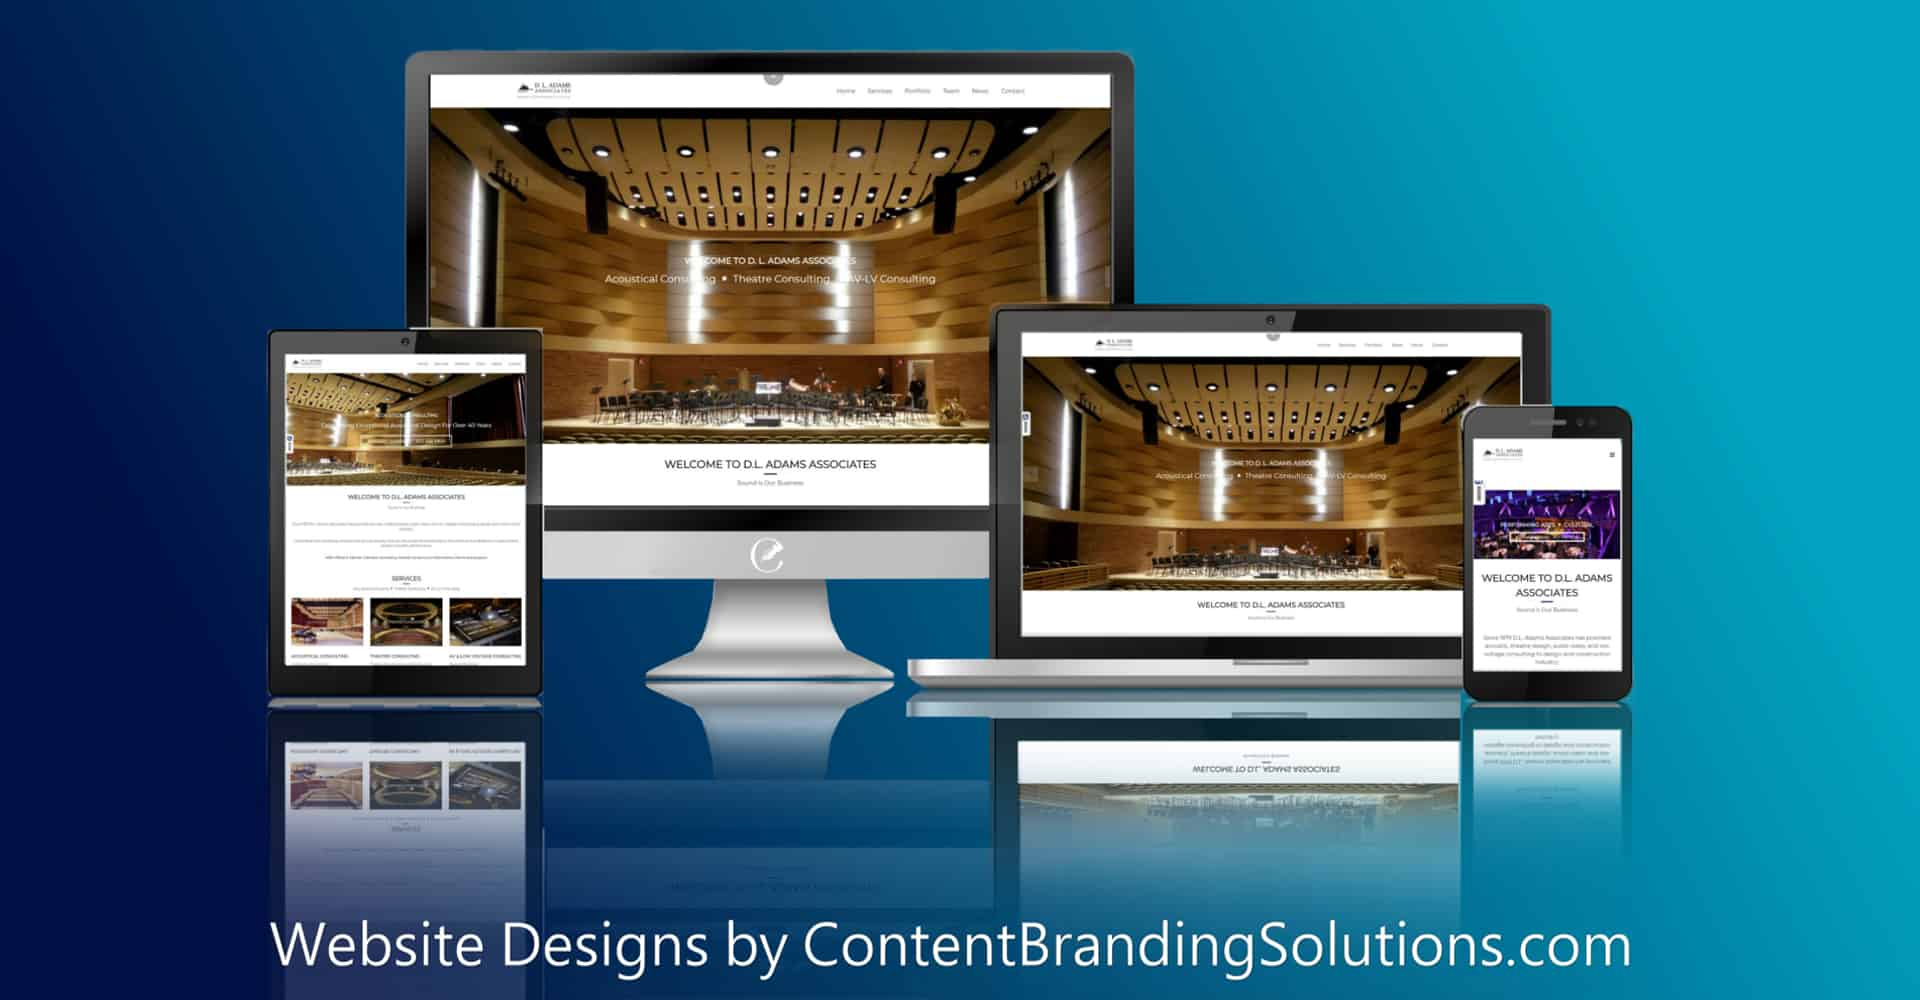 Content Branding Solutions Creative Website Design, Social Media, Internet Marketing, Web development, Branding, & SEO consulting services